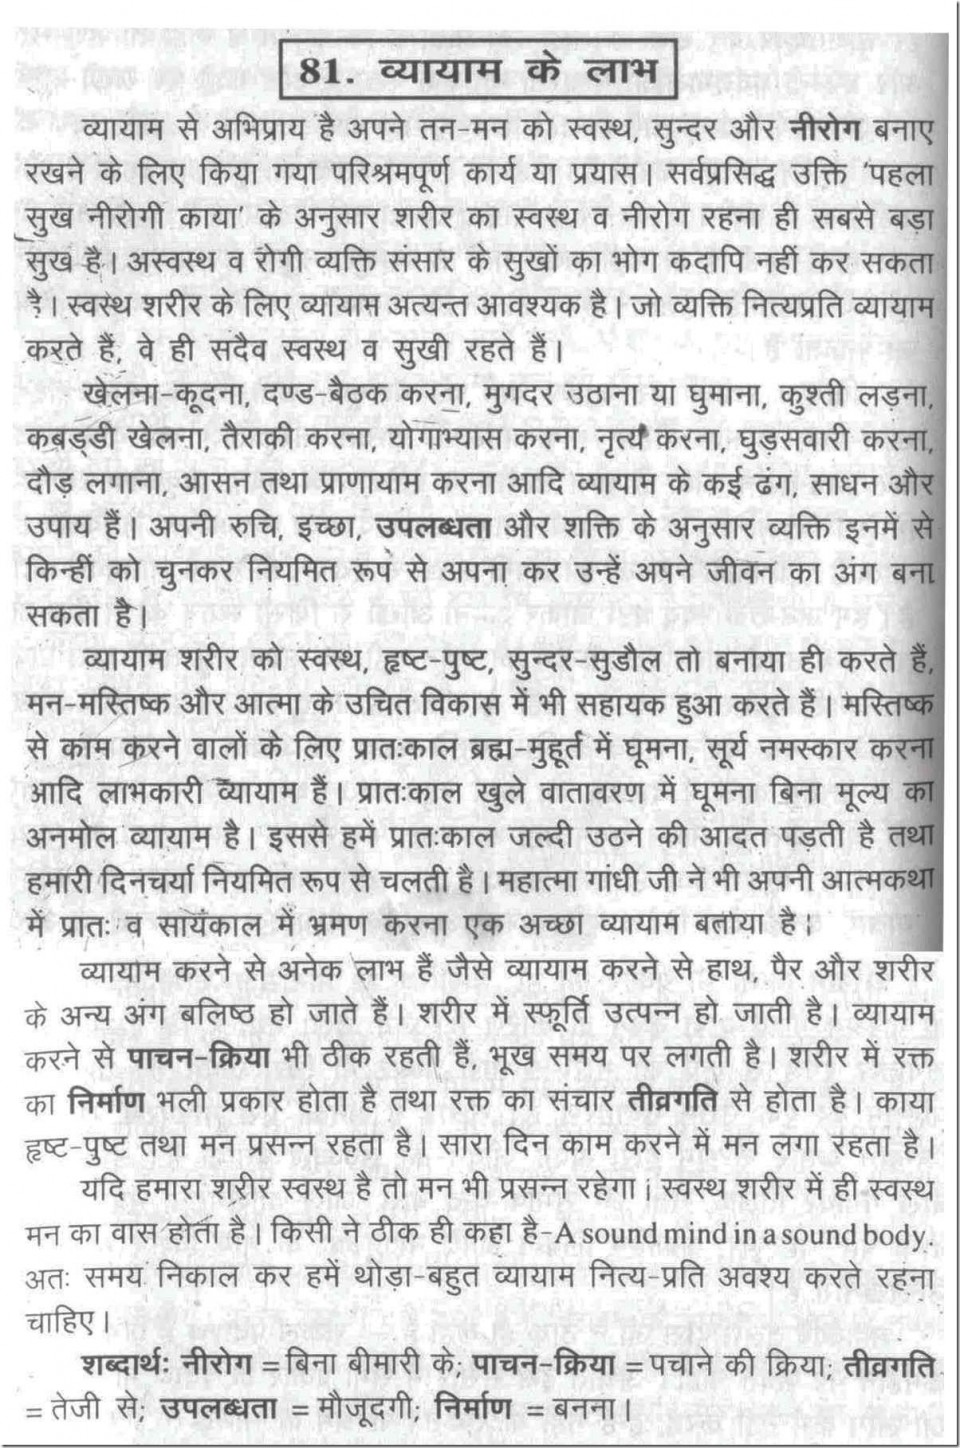 011 2563478896 Essay On Health And Fitness Through Food Good Habits In Hindi Exceptional Habit Wikipedia Eating 960